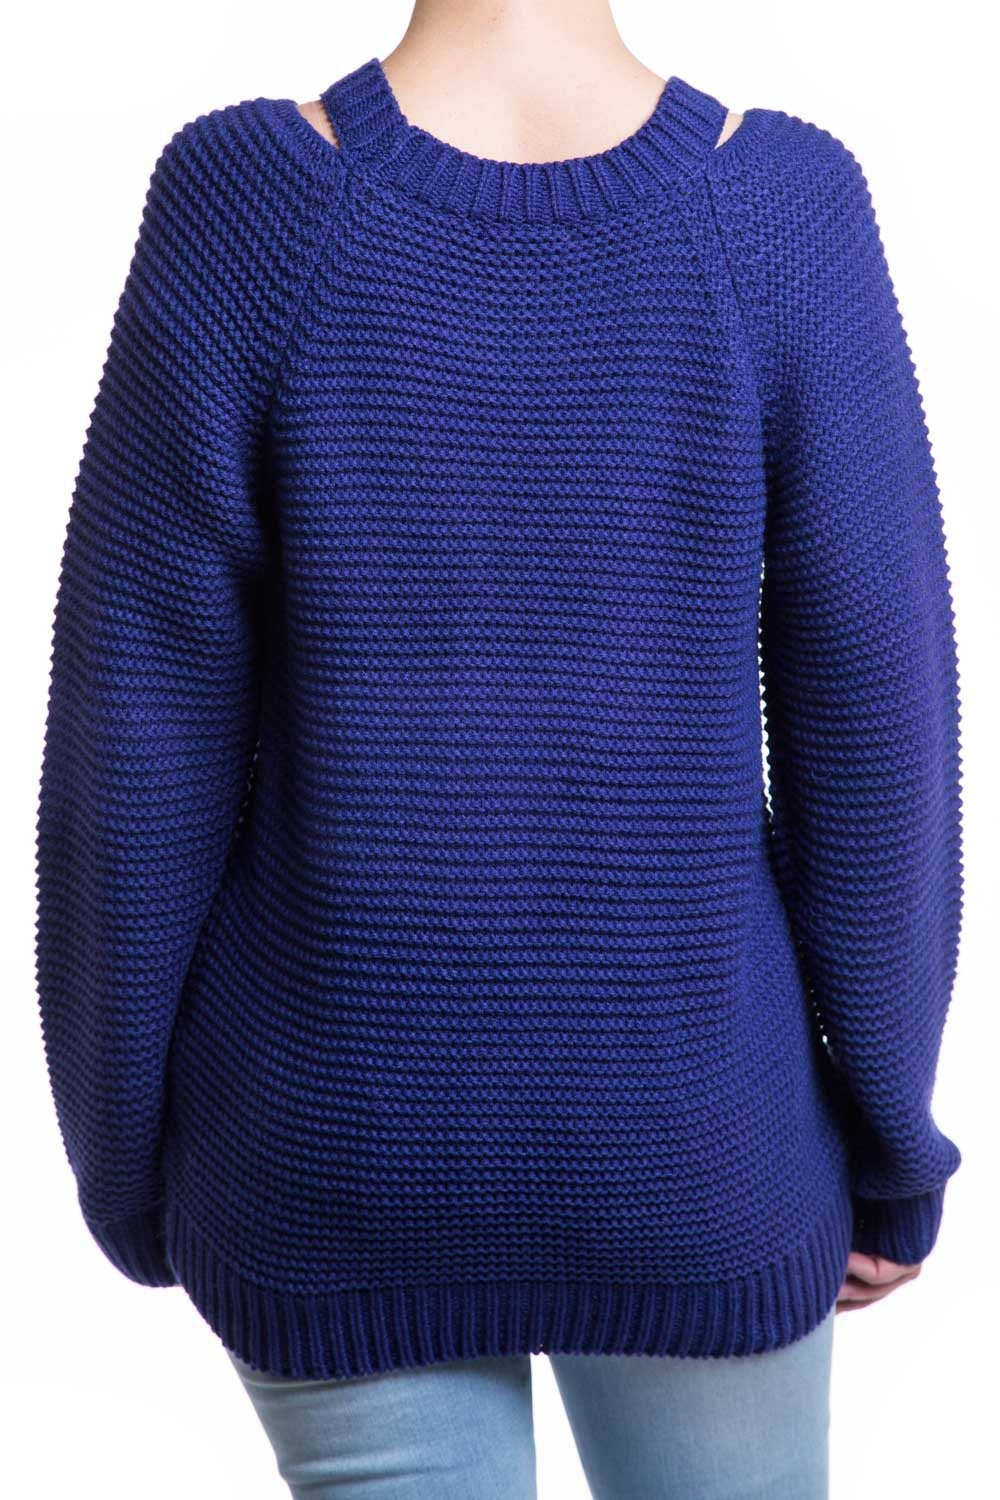 Type 1 Shoulder Show Sweater